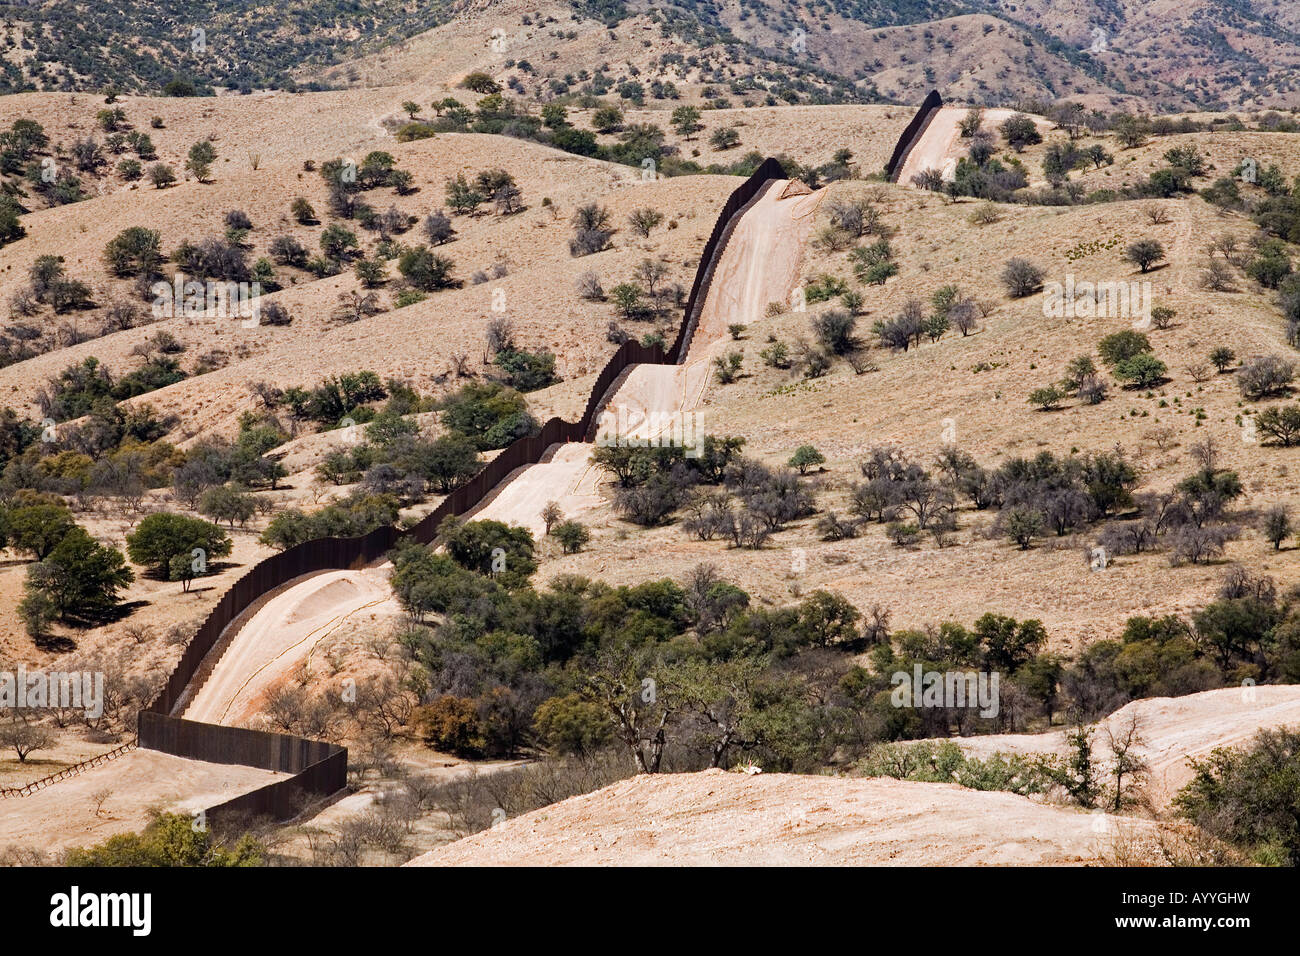 Border Fence Separating USA and Mexico in Sonoran Desert - Stock Image